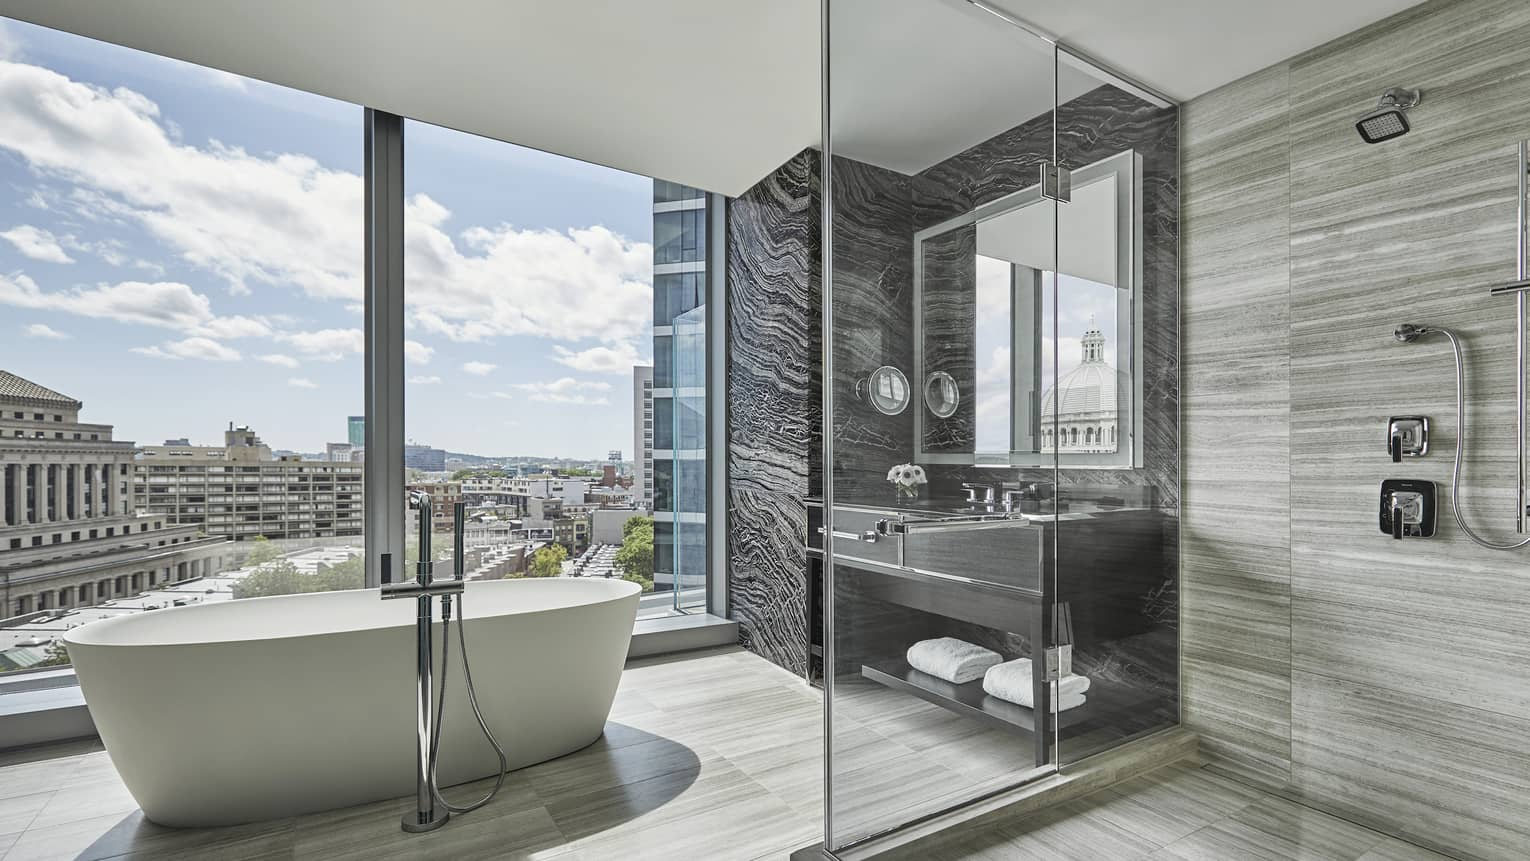 A free-standing tub sits in the middle of a large neutral bathroom, surrounded by floor to ceiling windows, at four seasons hotel boston one dalton